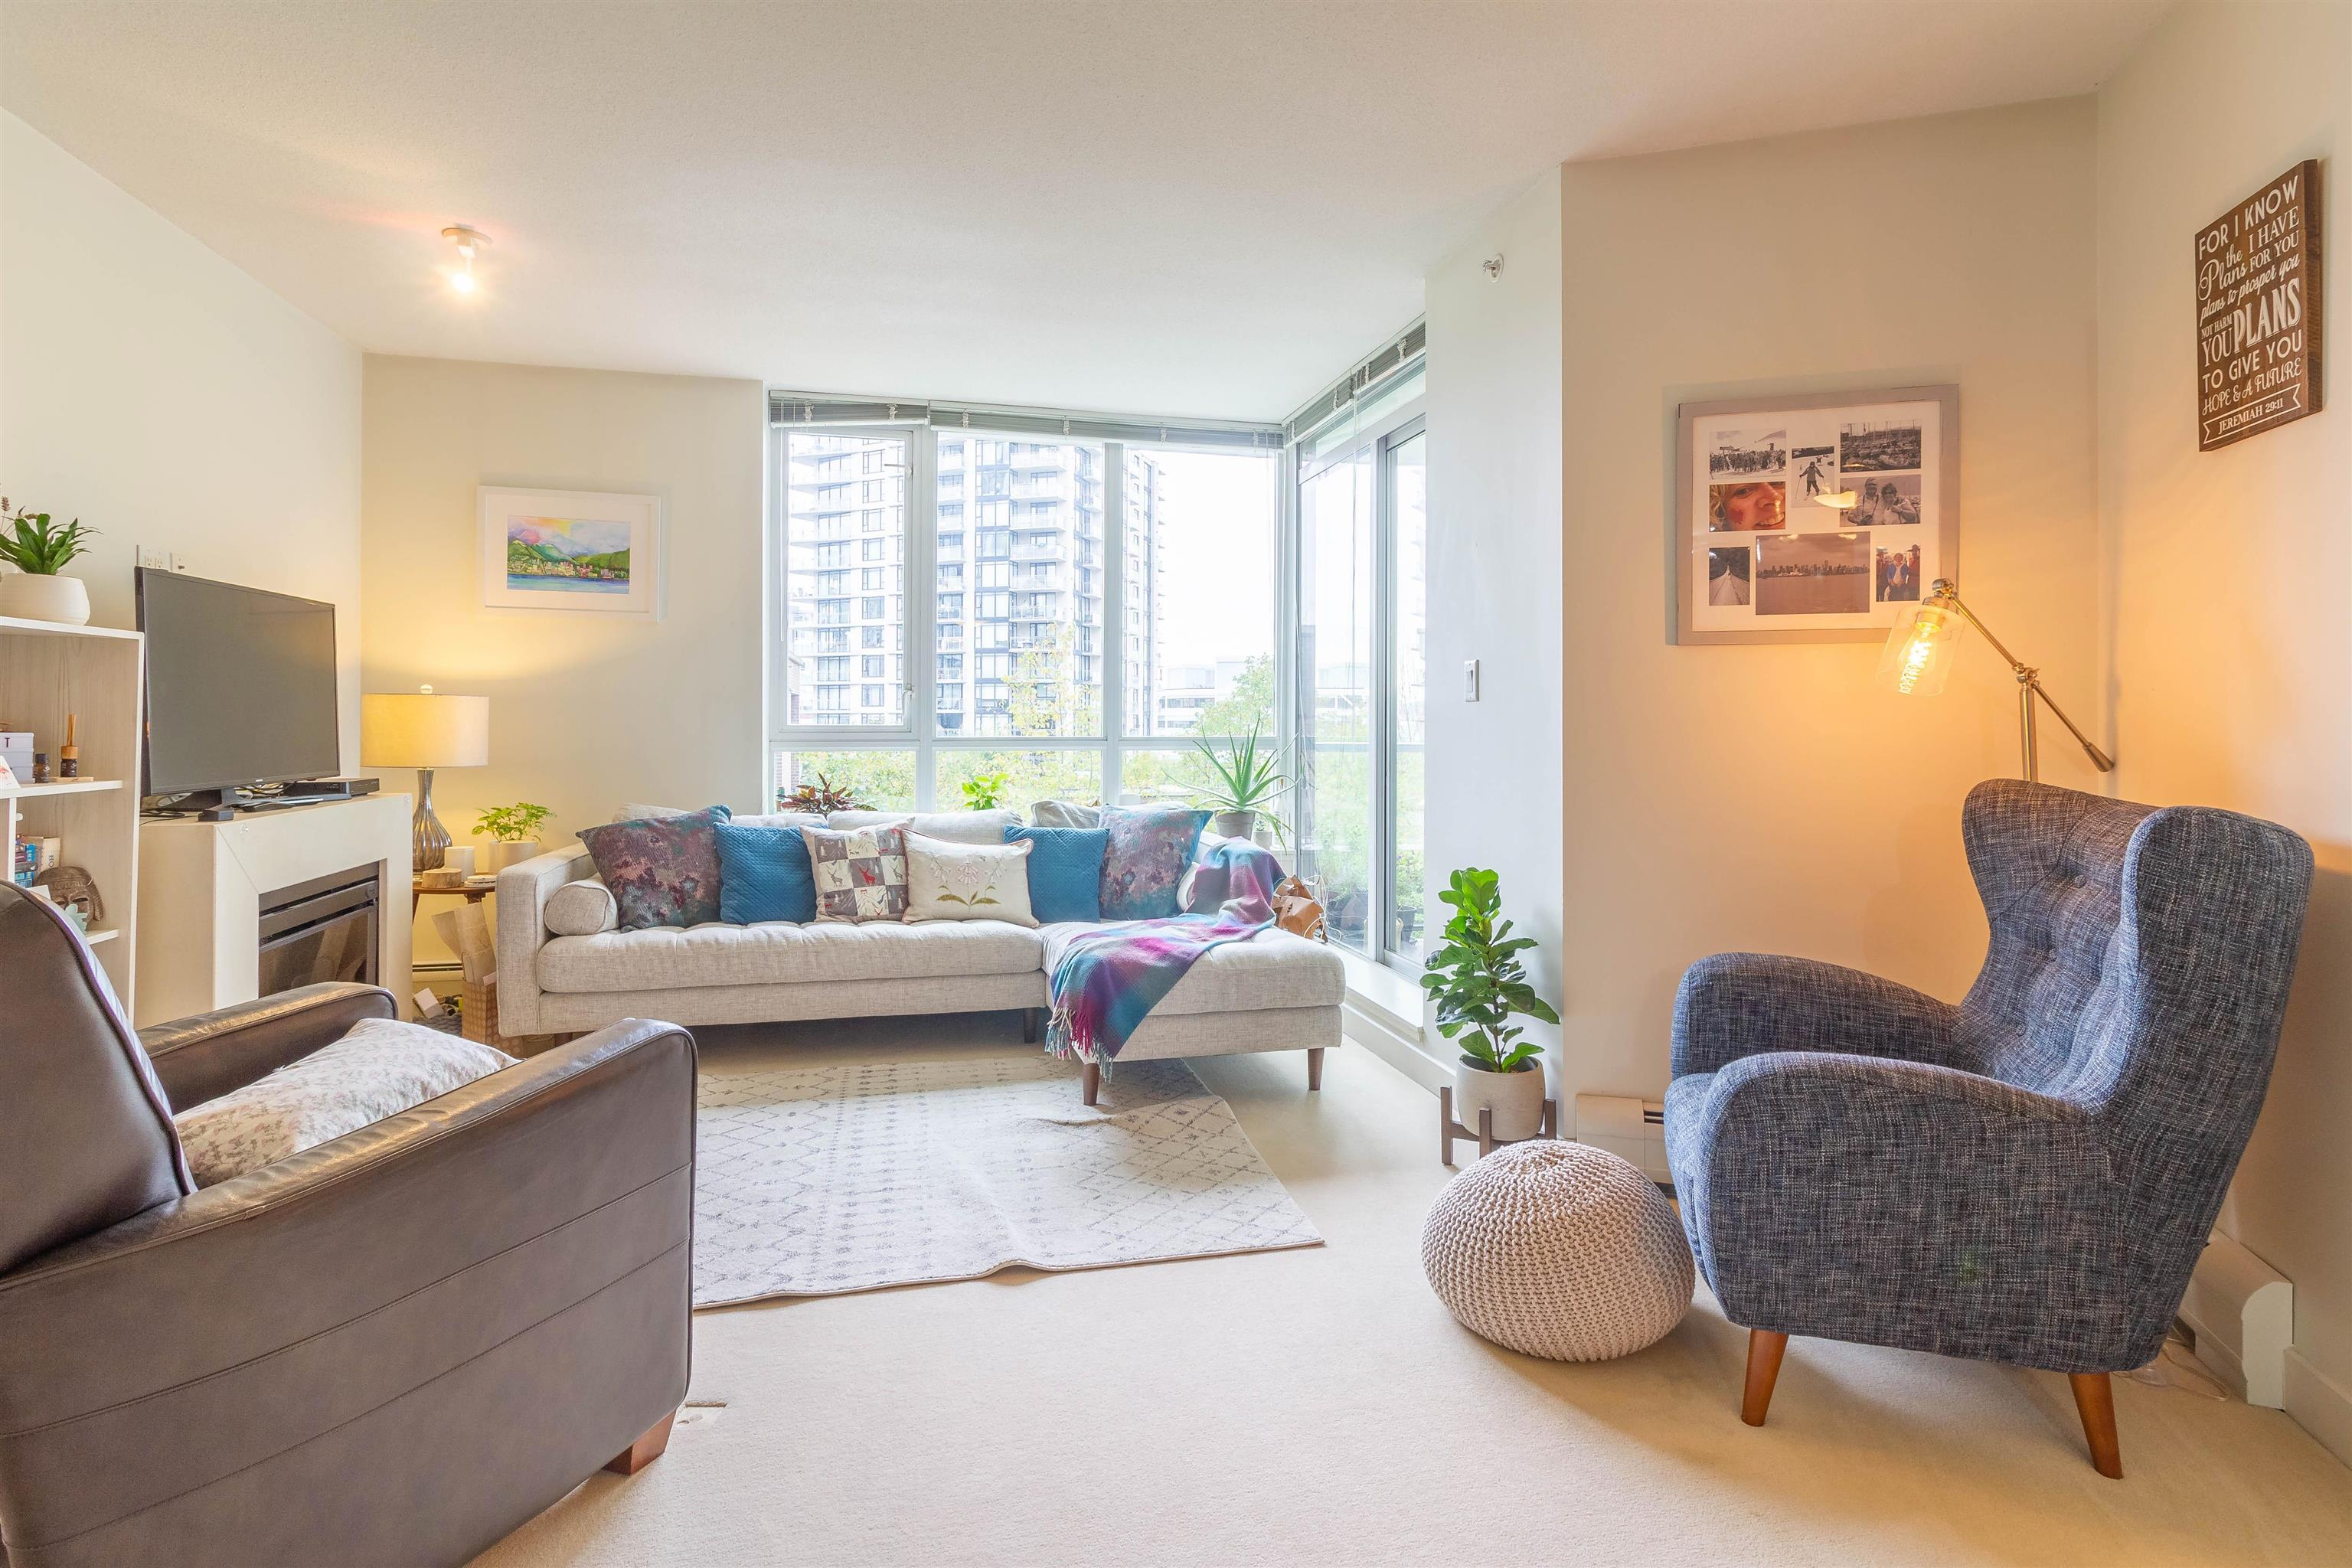 208 175 W 2ND STREET - Lower Lonsdale Apartment/Condo for sale, 1 Bedroom (R2625562) - #4